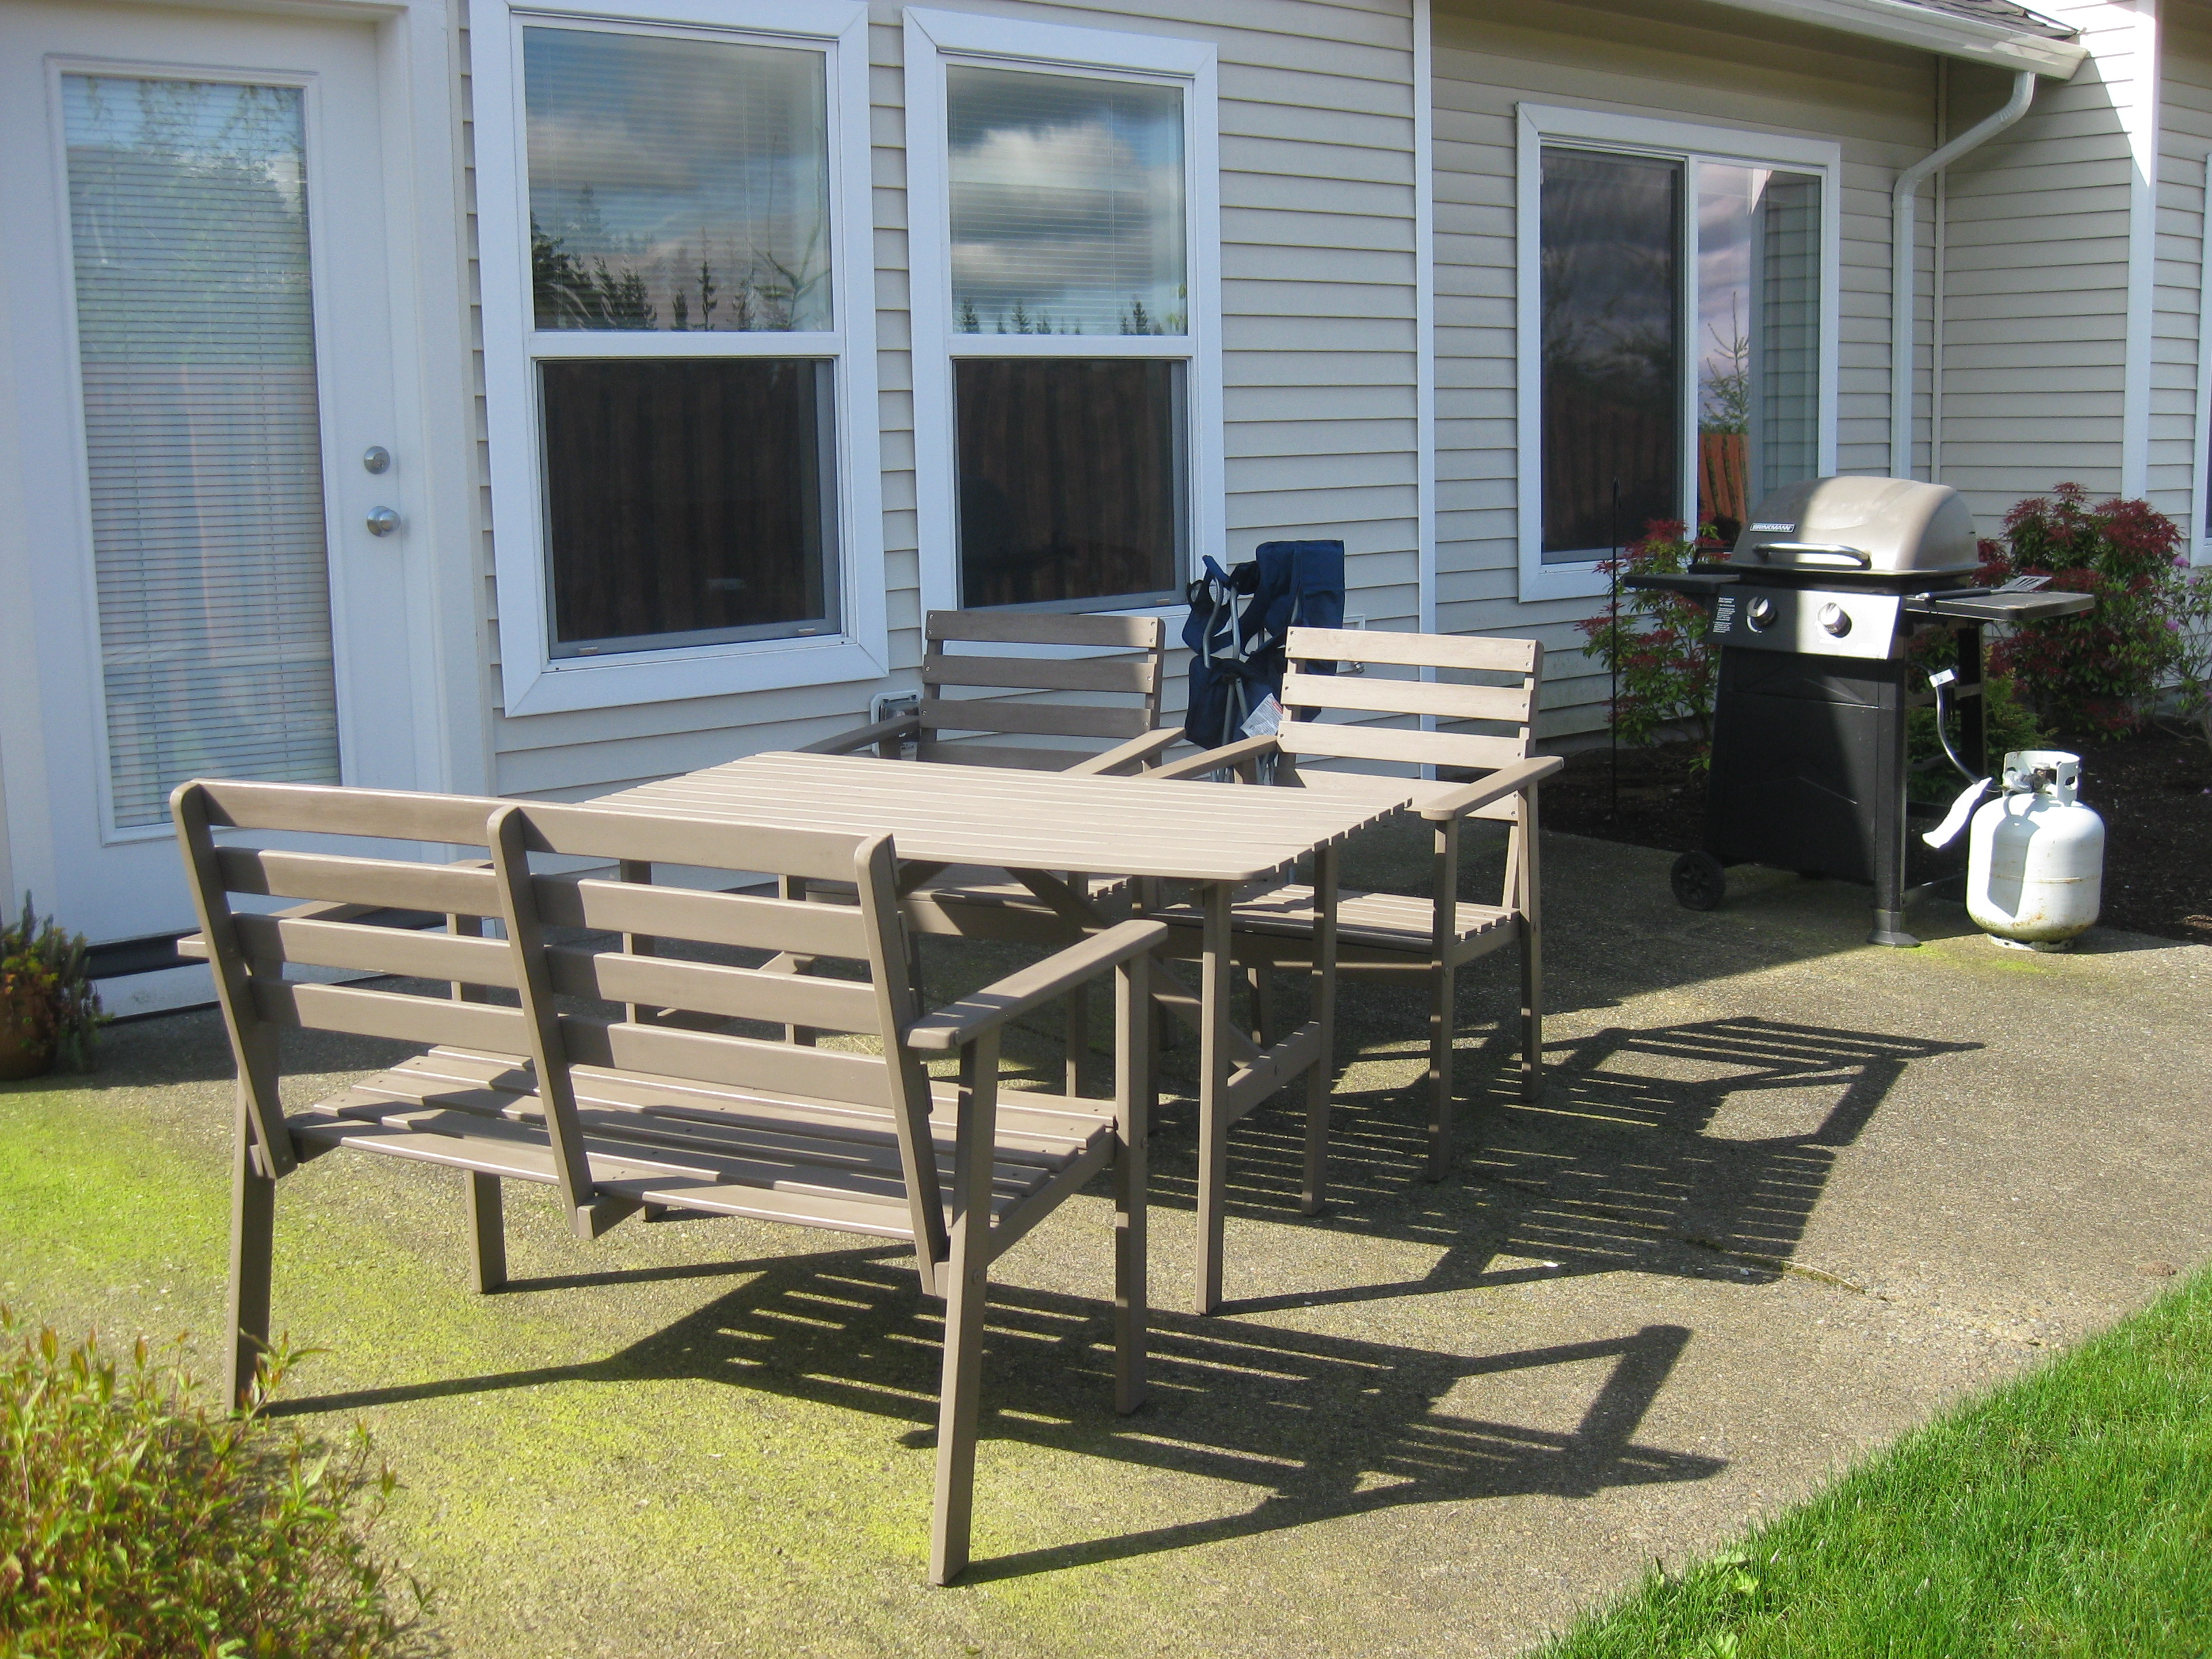 IKEA patio furniture project